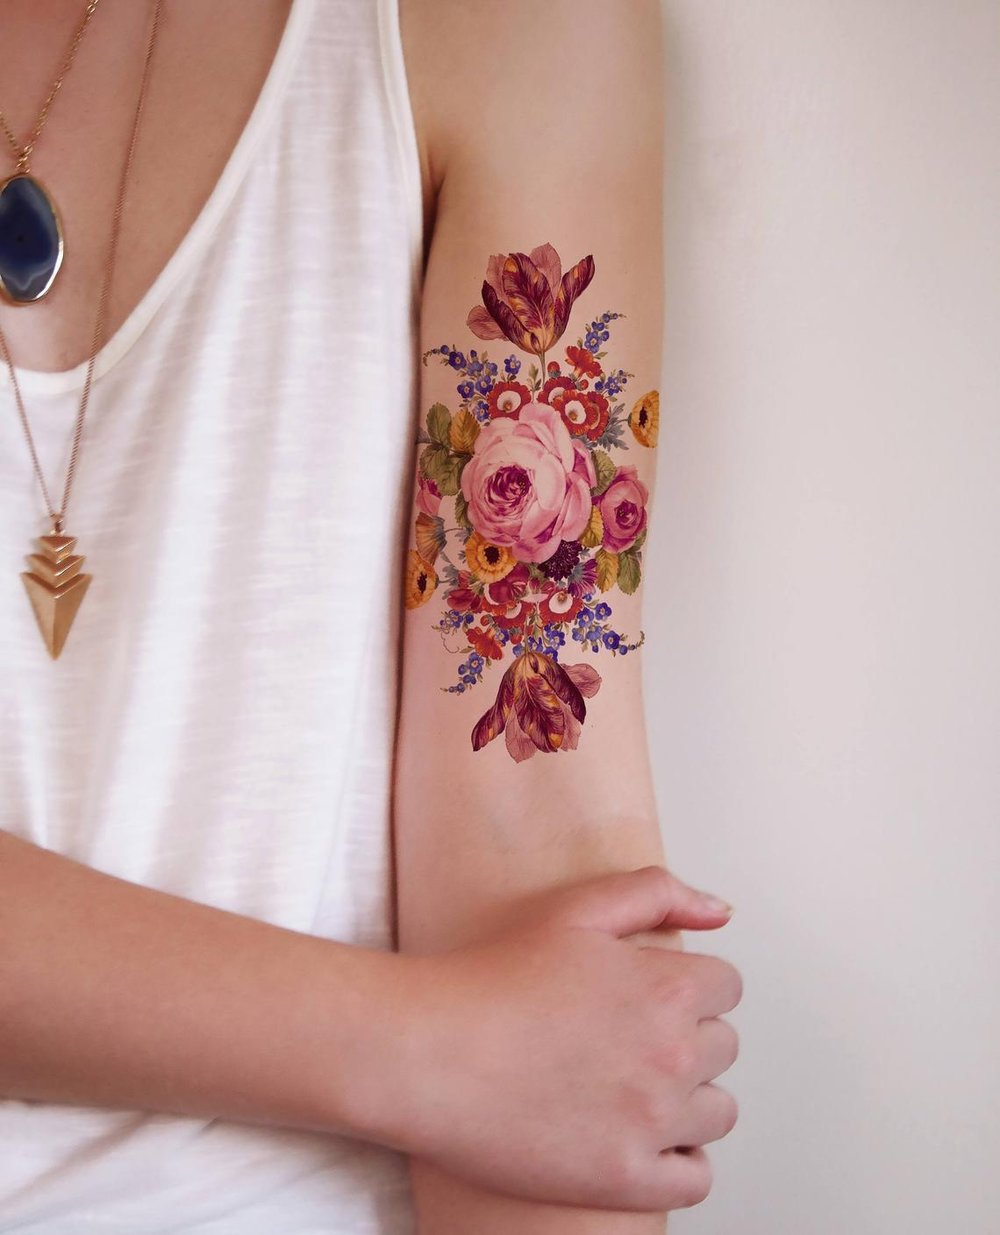 Vintage Floral Rose Temporary Tattoo By Tattoorary